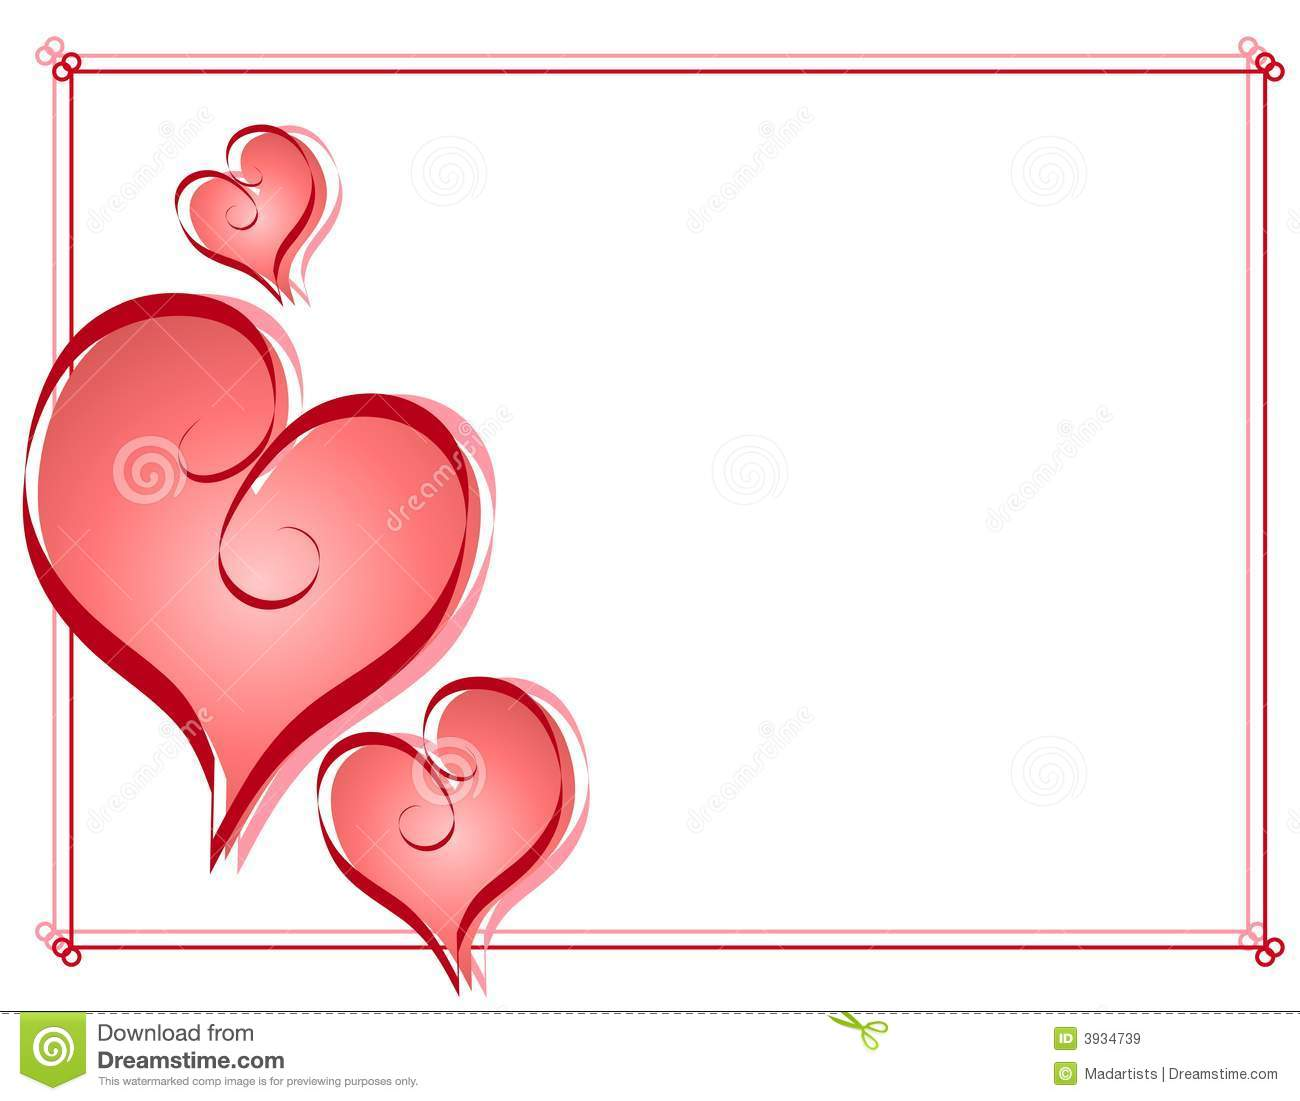 Calligraphy Valentine Hearts Frame Border Royalty Free Cartoon